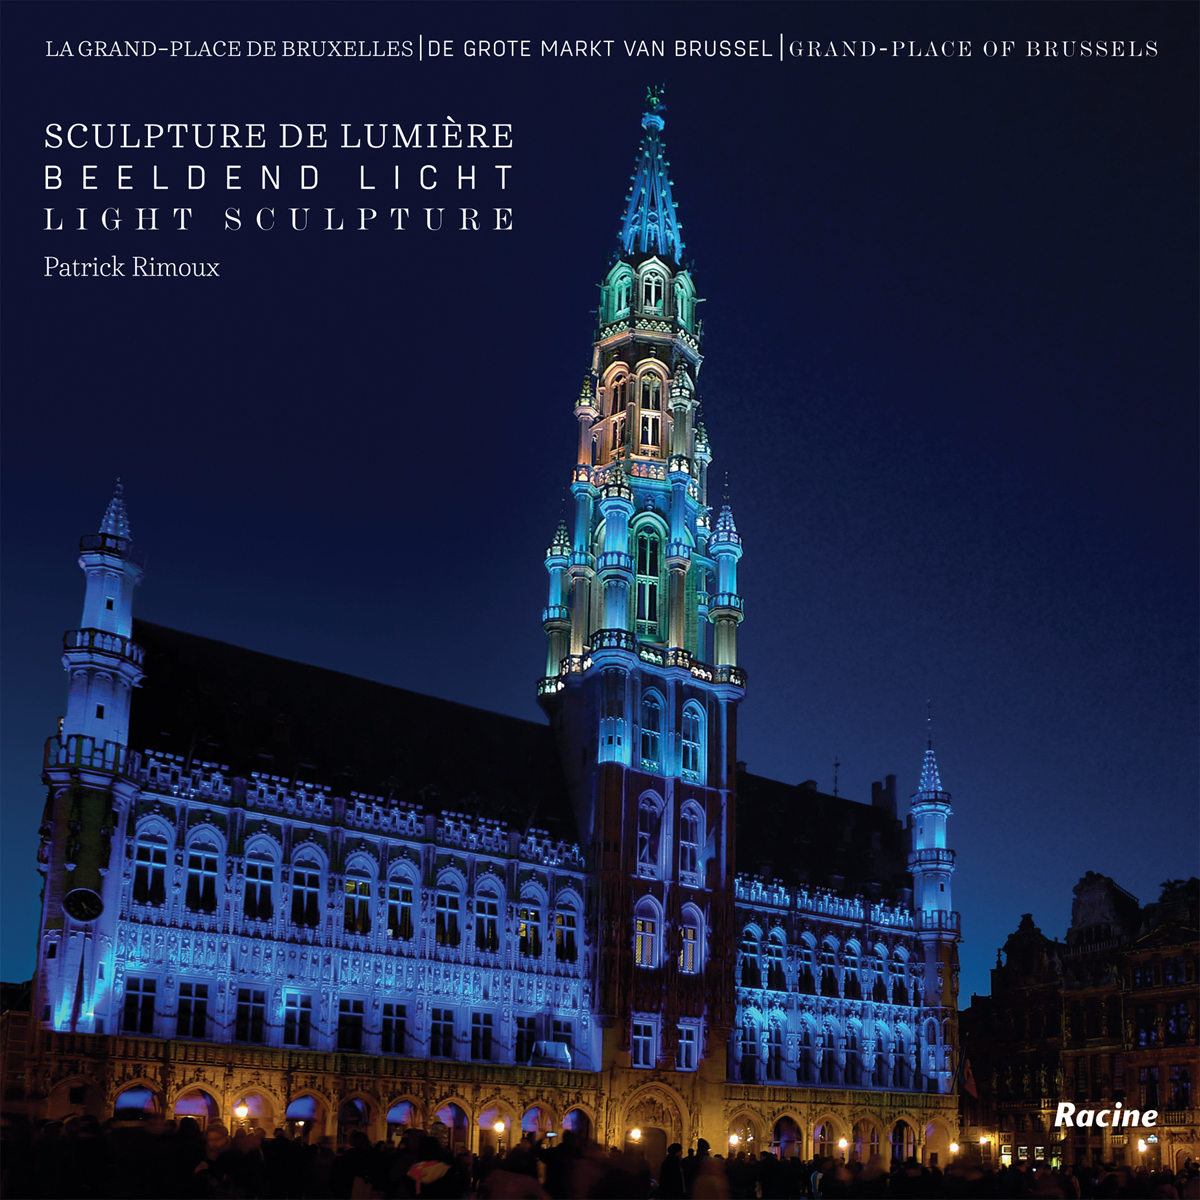 Grand Place of Brussels: Light Sculptures